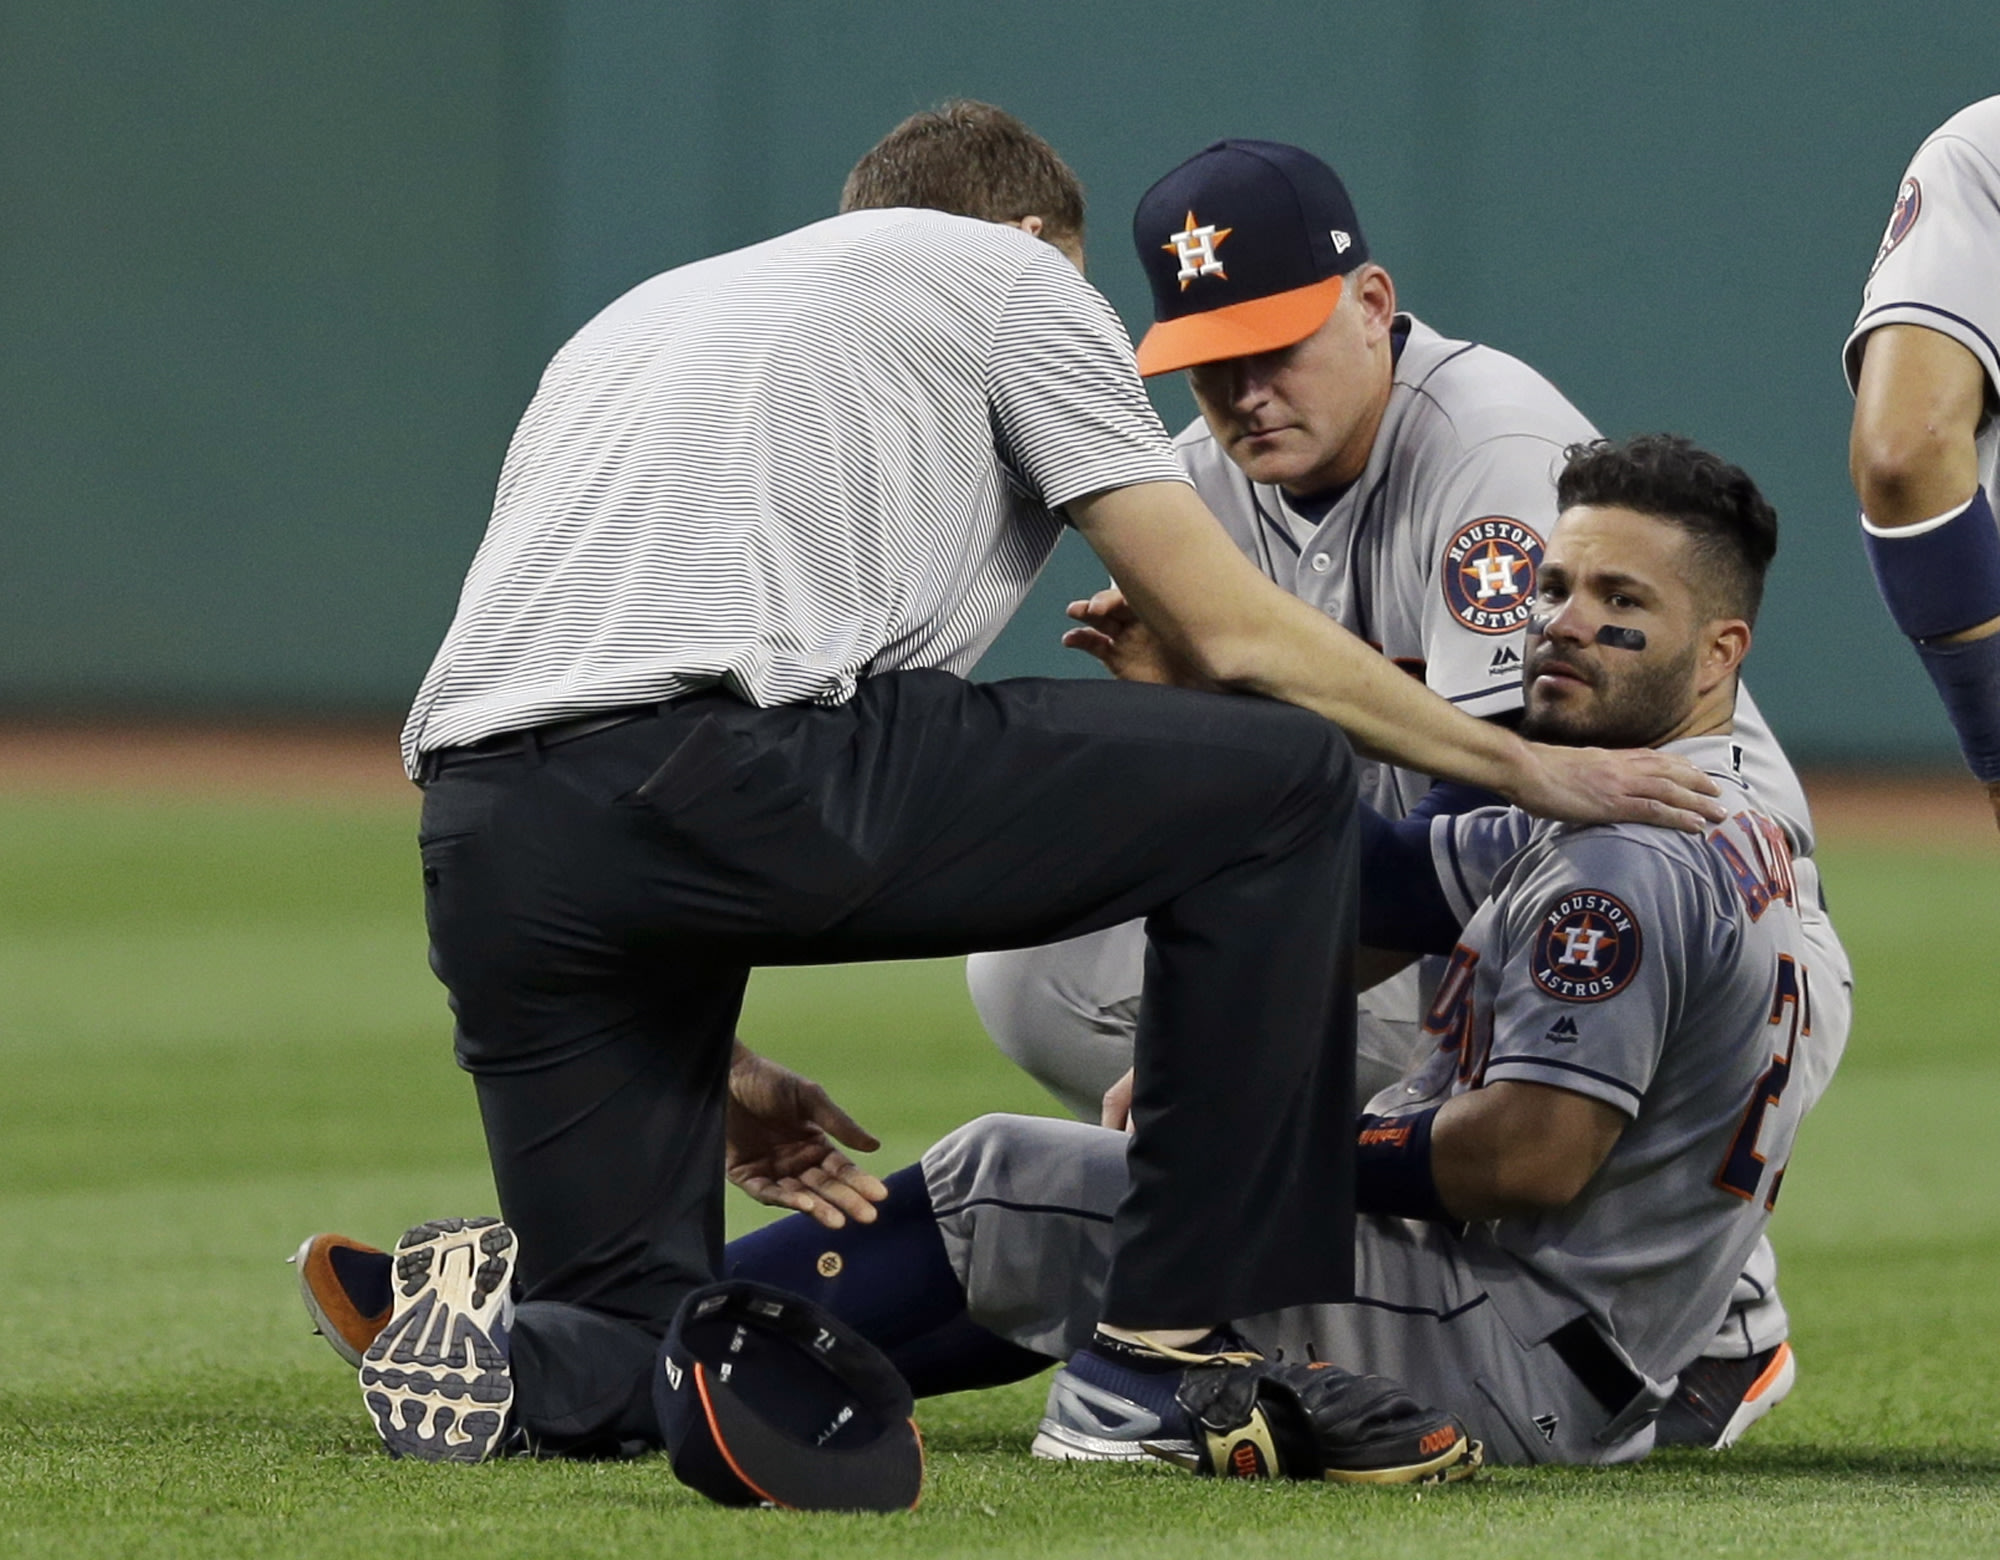 Jose Altuve looks up while receiving medical attention after running into Teoscar Hernandez. (AP Photo/Tony Dejak)